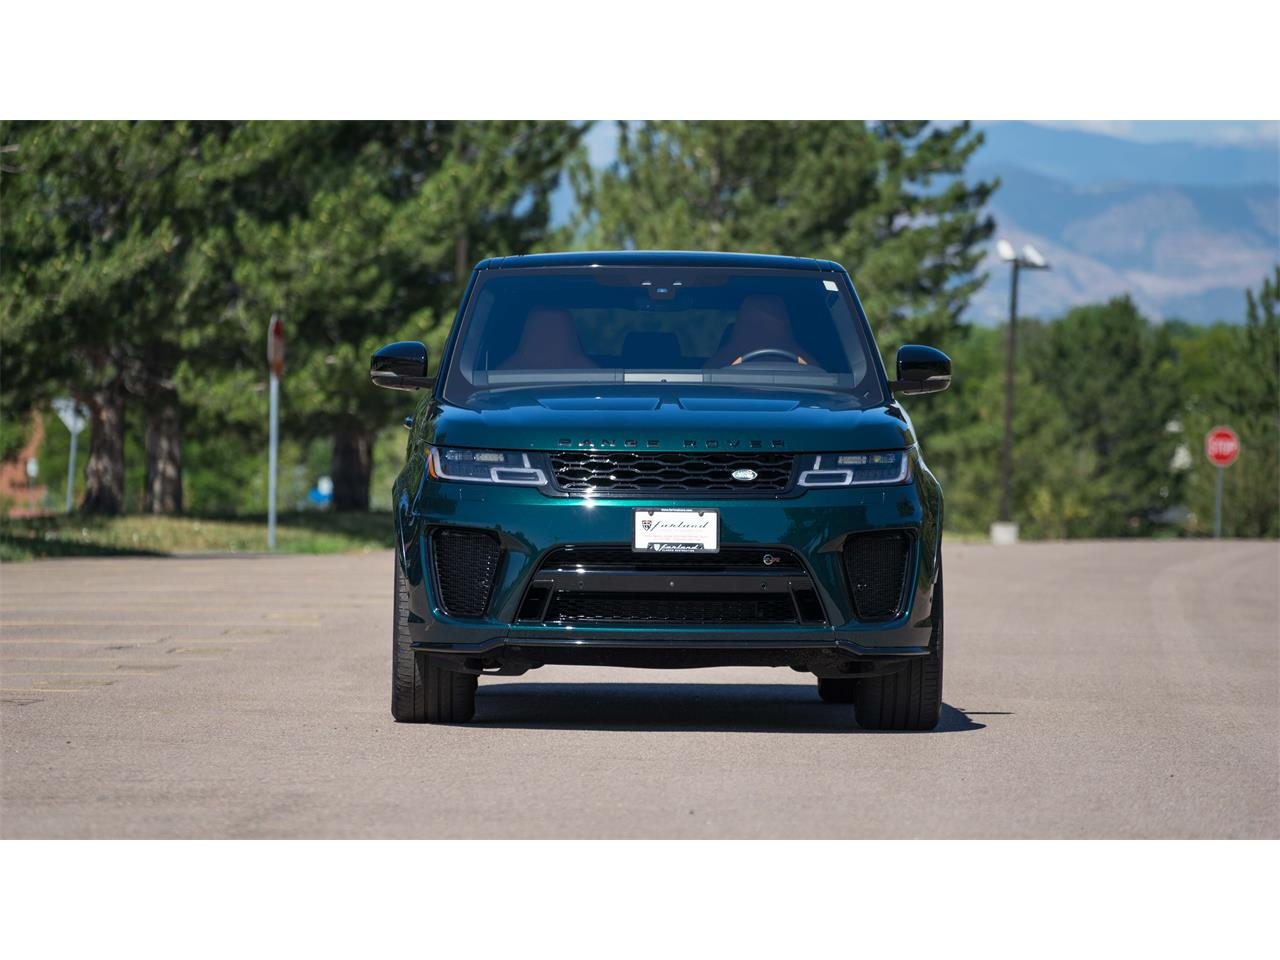 2019 Land Rover Range Rover Sport (CC-1362554) for sale in Englewood, Colorado